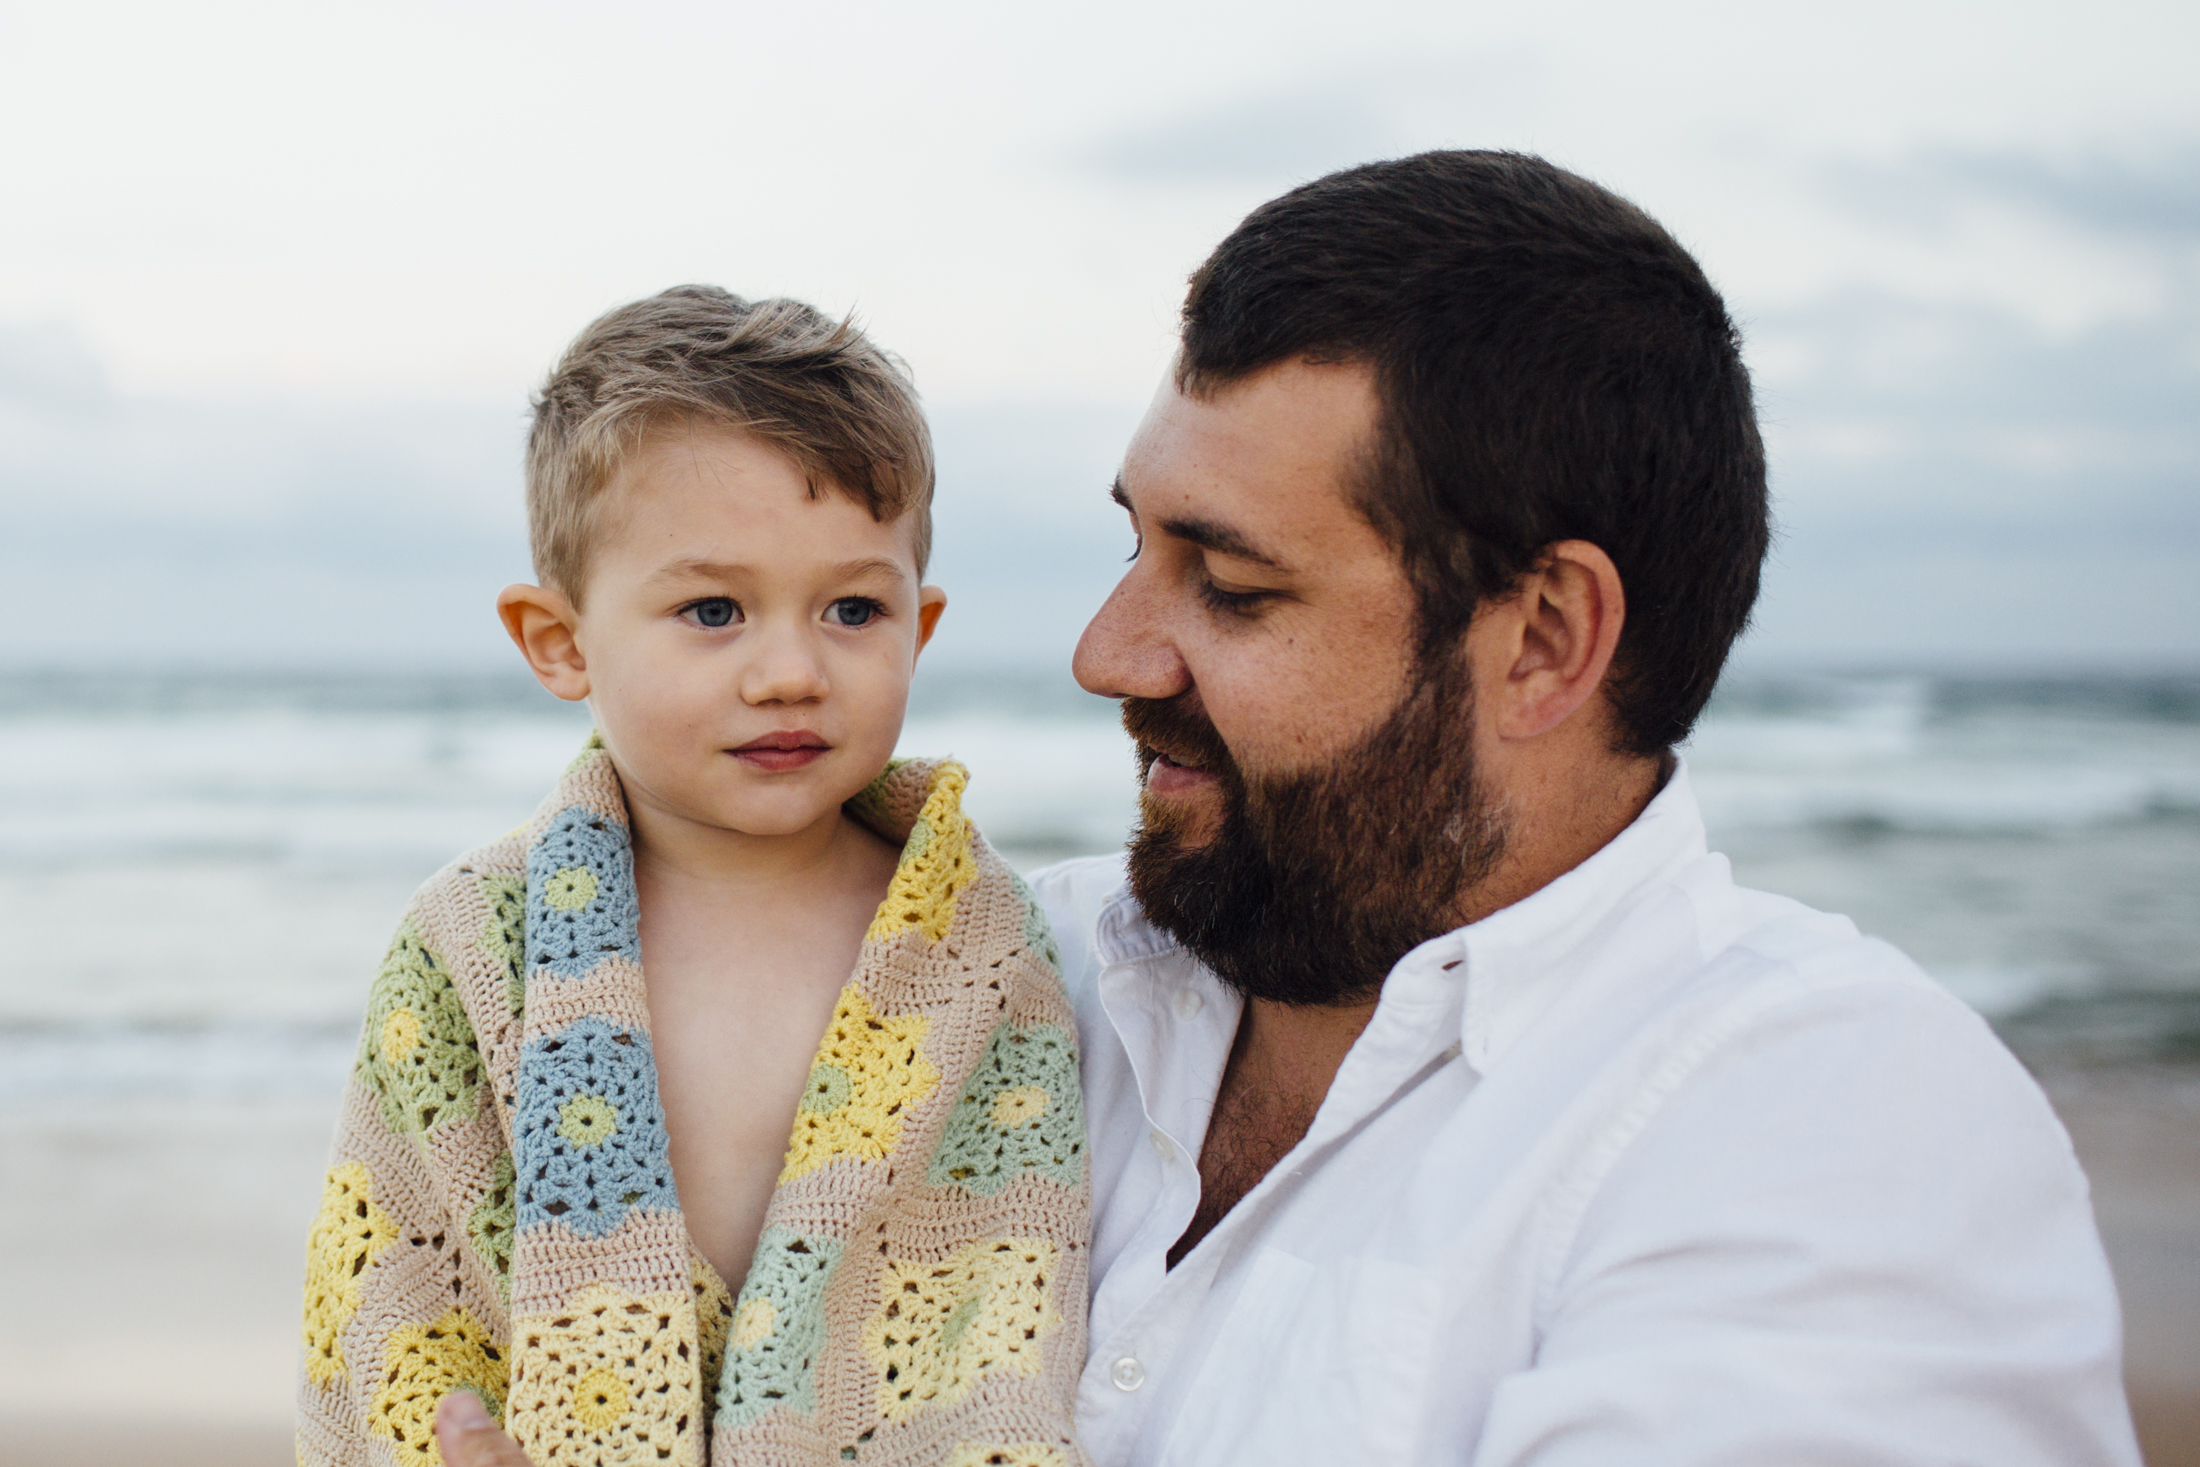 sheridan_nilsson_northern_beaches_family_lifestyle_photographer-3560.jpg